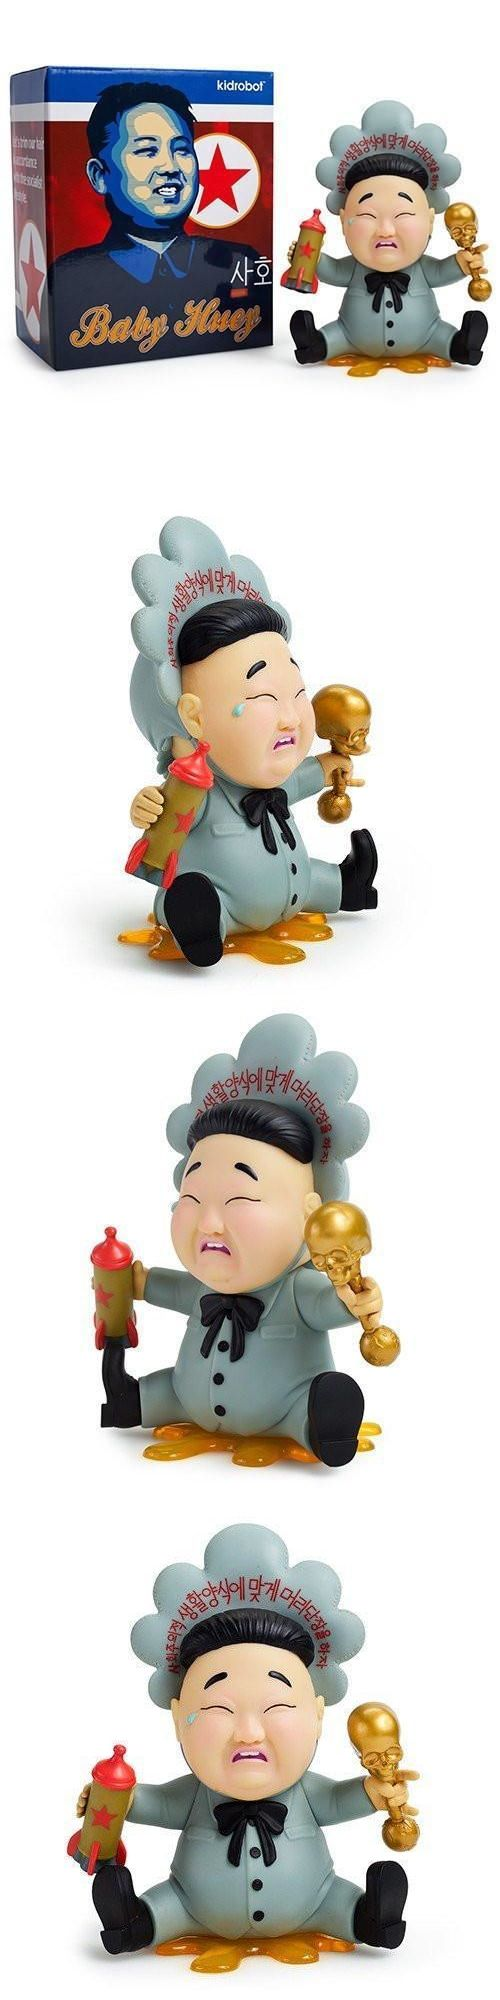 Designer and Urban Vinyl 158672: Baby Huey - Frank Kozik X Kidrobot Medium 7 Vinyl Figure Brand New In Box -> BUY IT NOW ONLY: $42.95 on eBay!